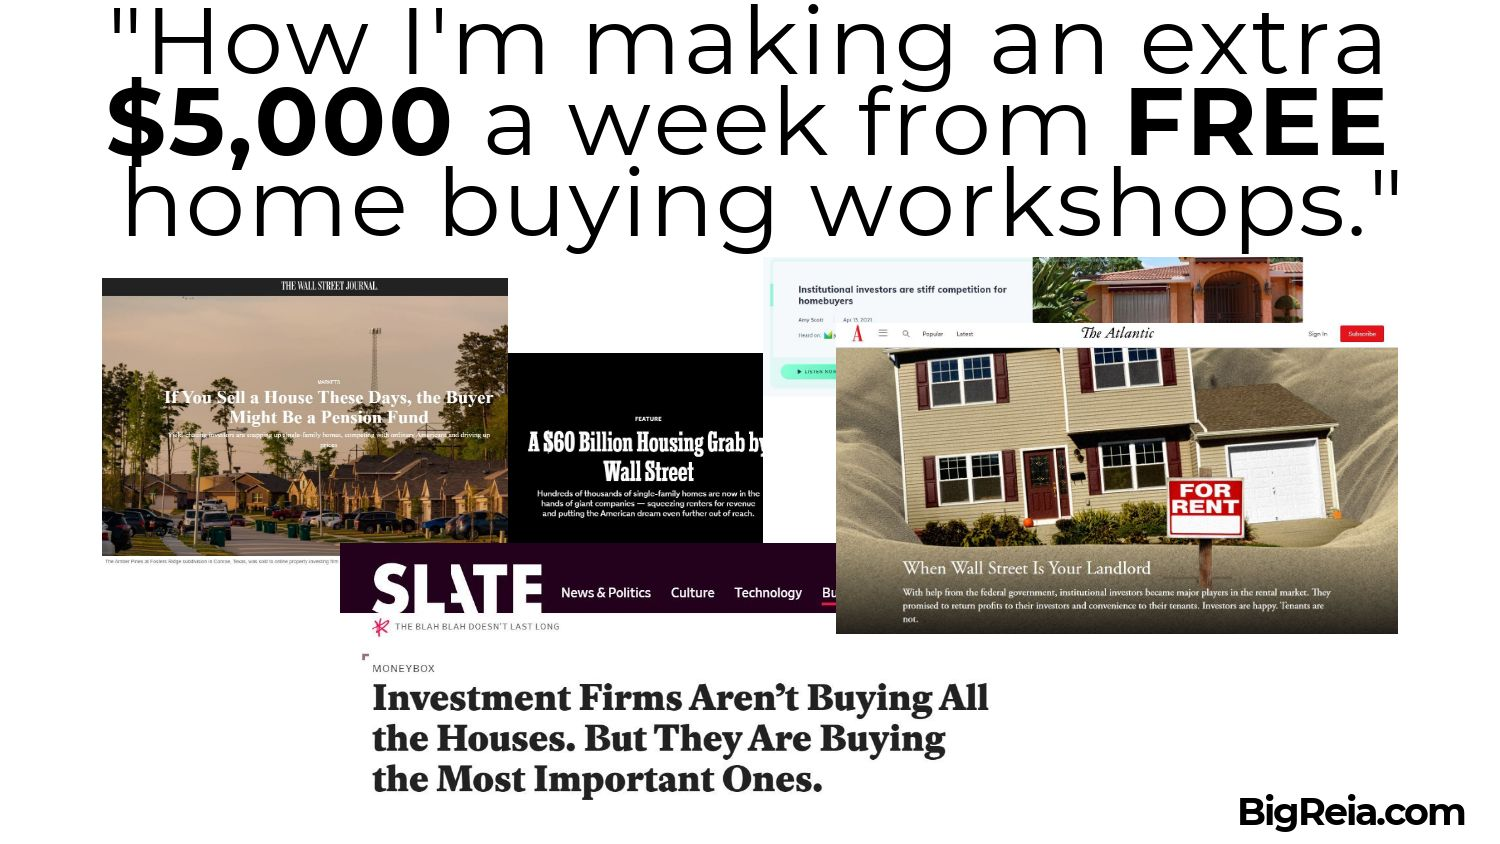 News articles showing hedge funds buying houses at record prices and speed